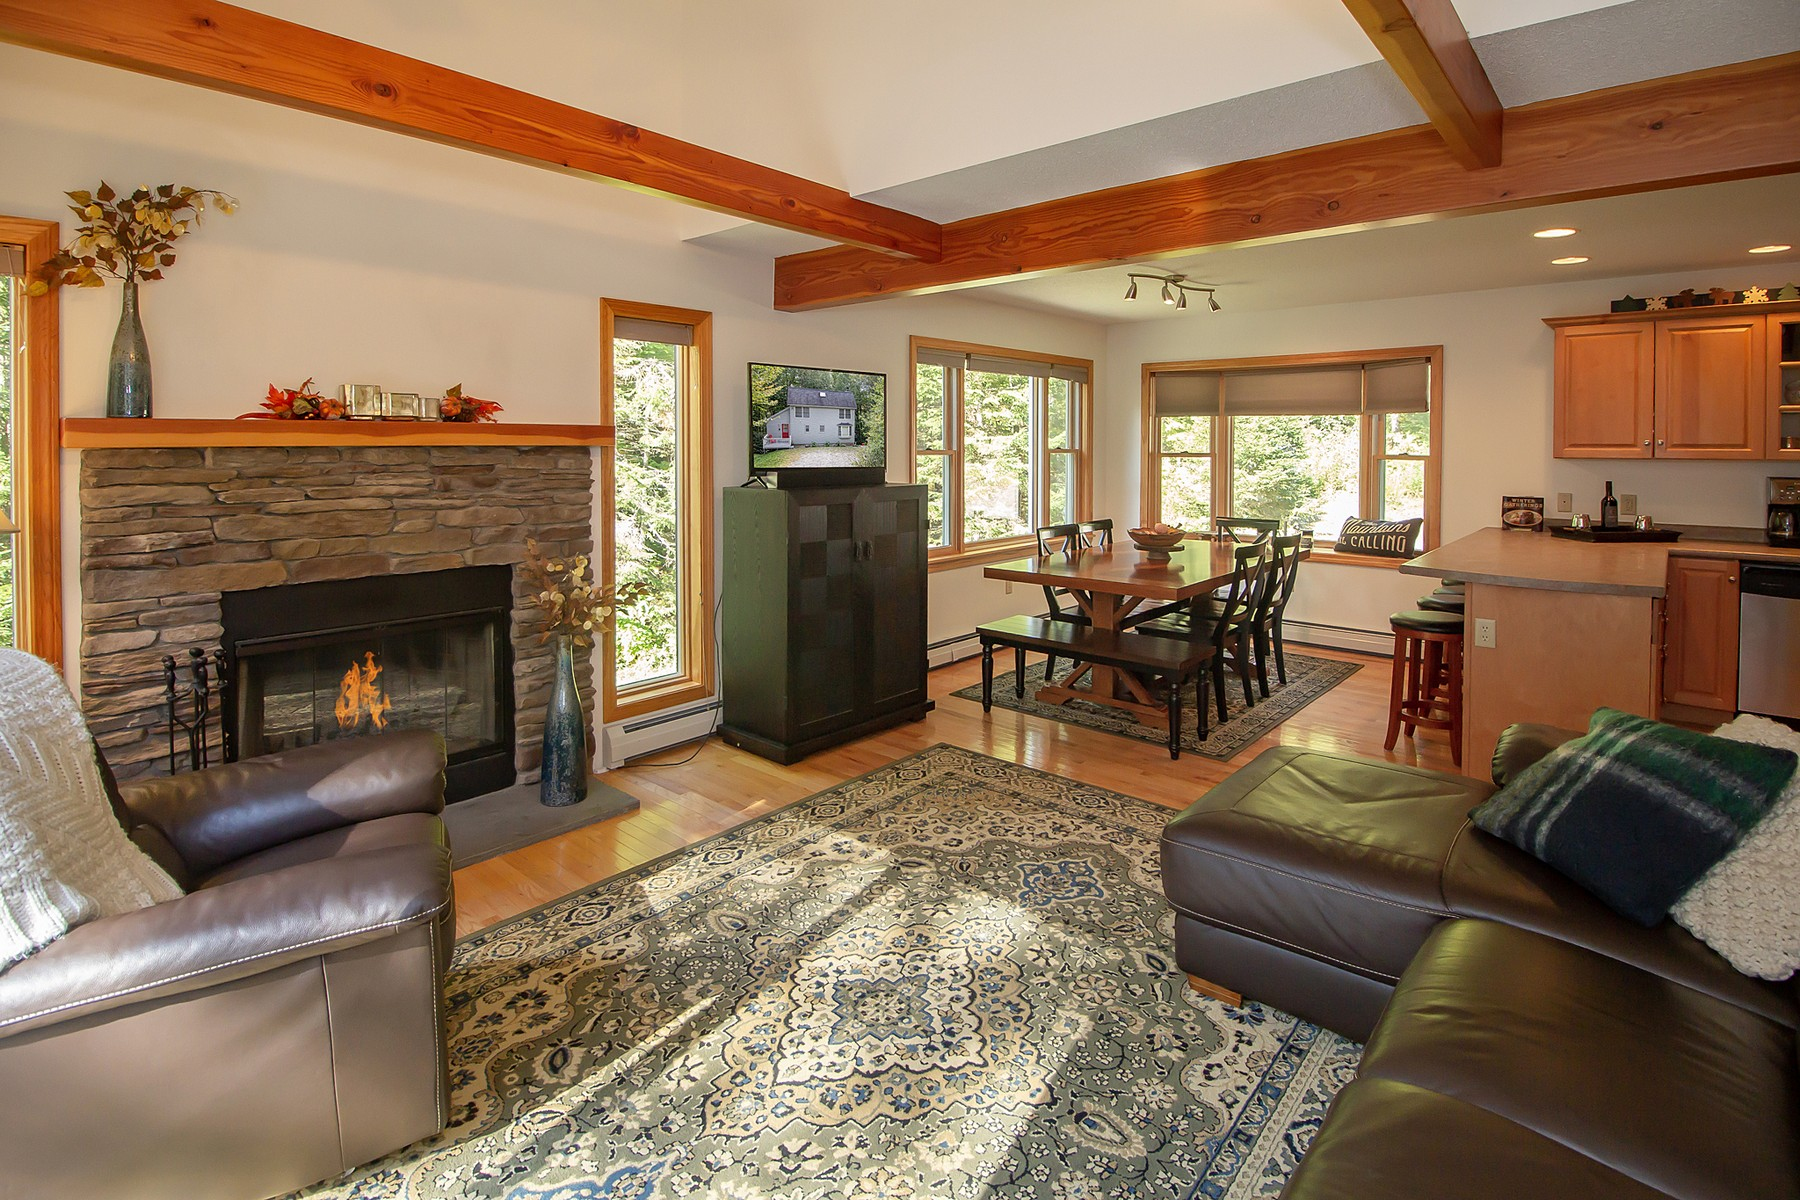 Single Family Homes for Sale at Beautiful Chimney Hill Home 44 Rabbit Run Wilmington, Vermont 05363 United States